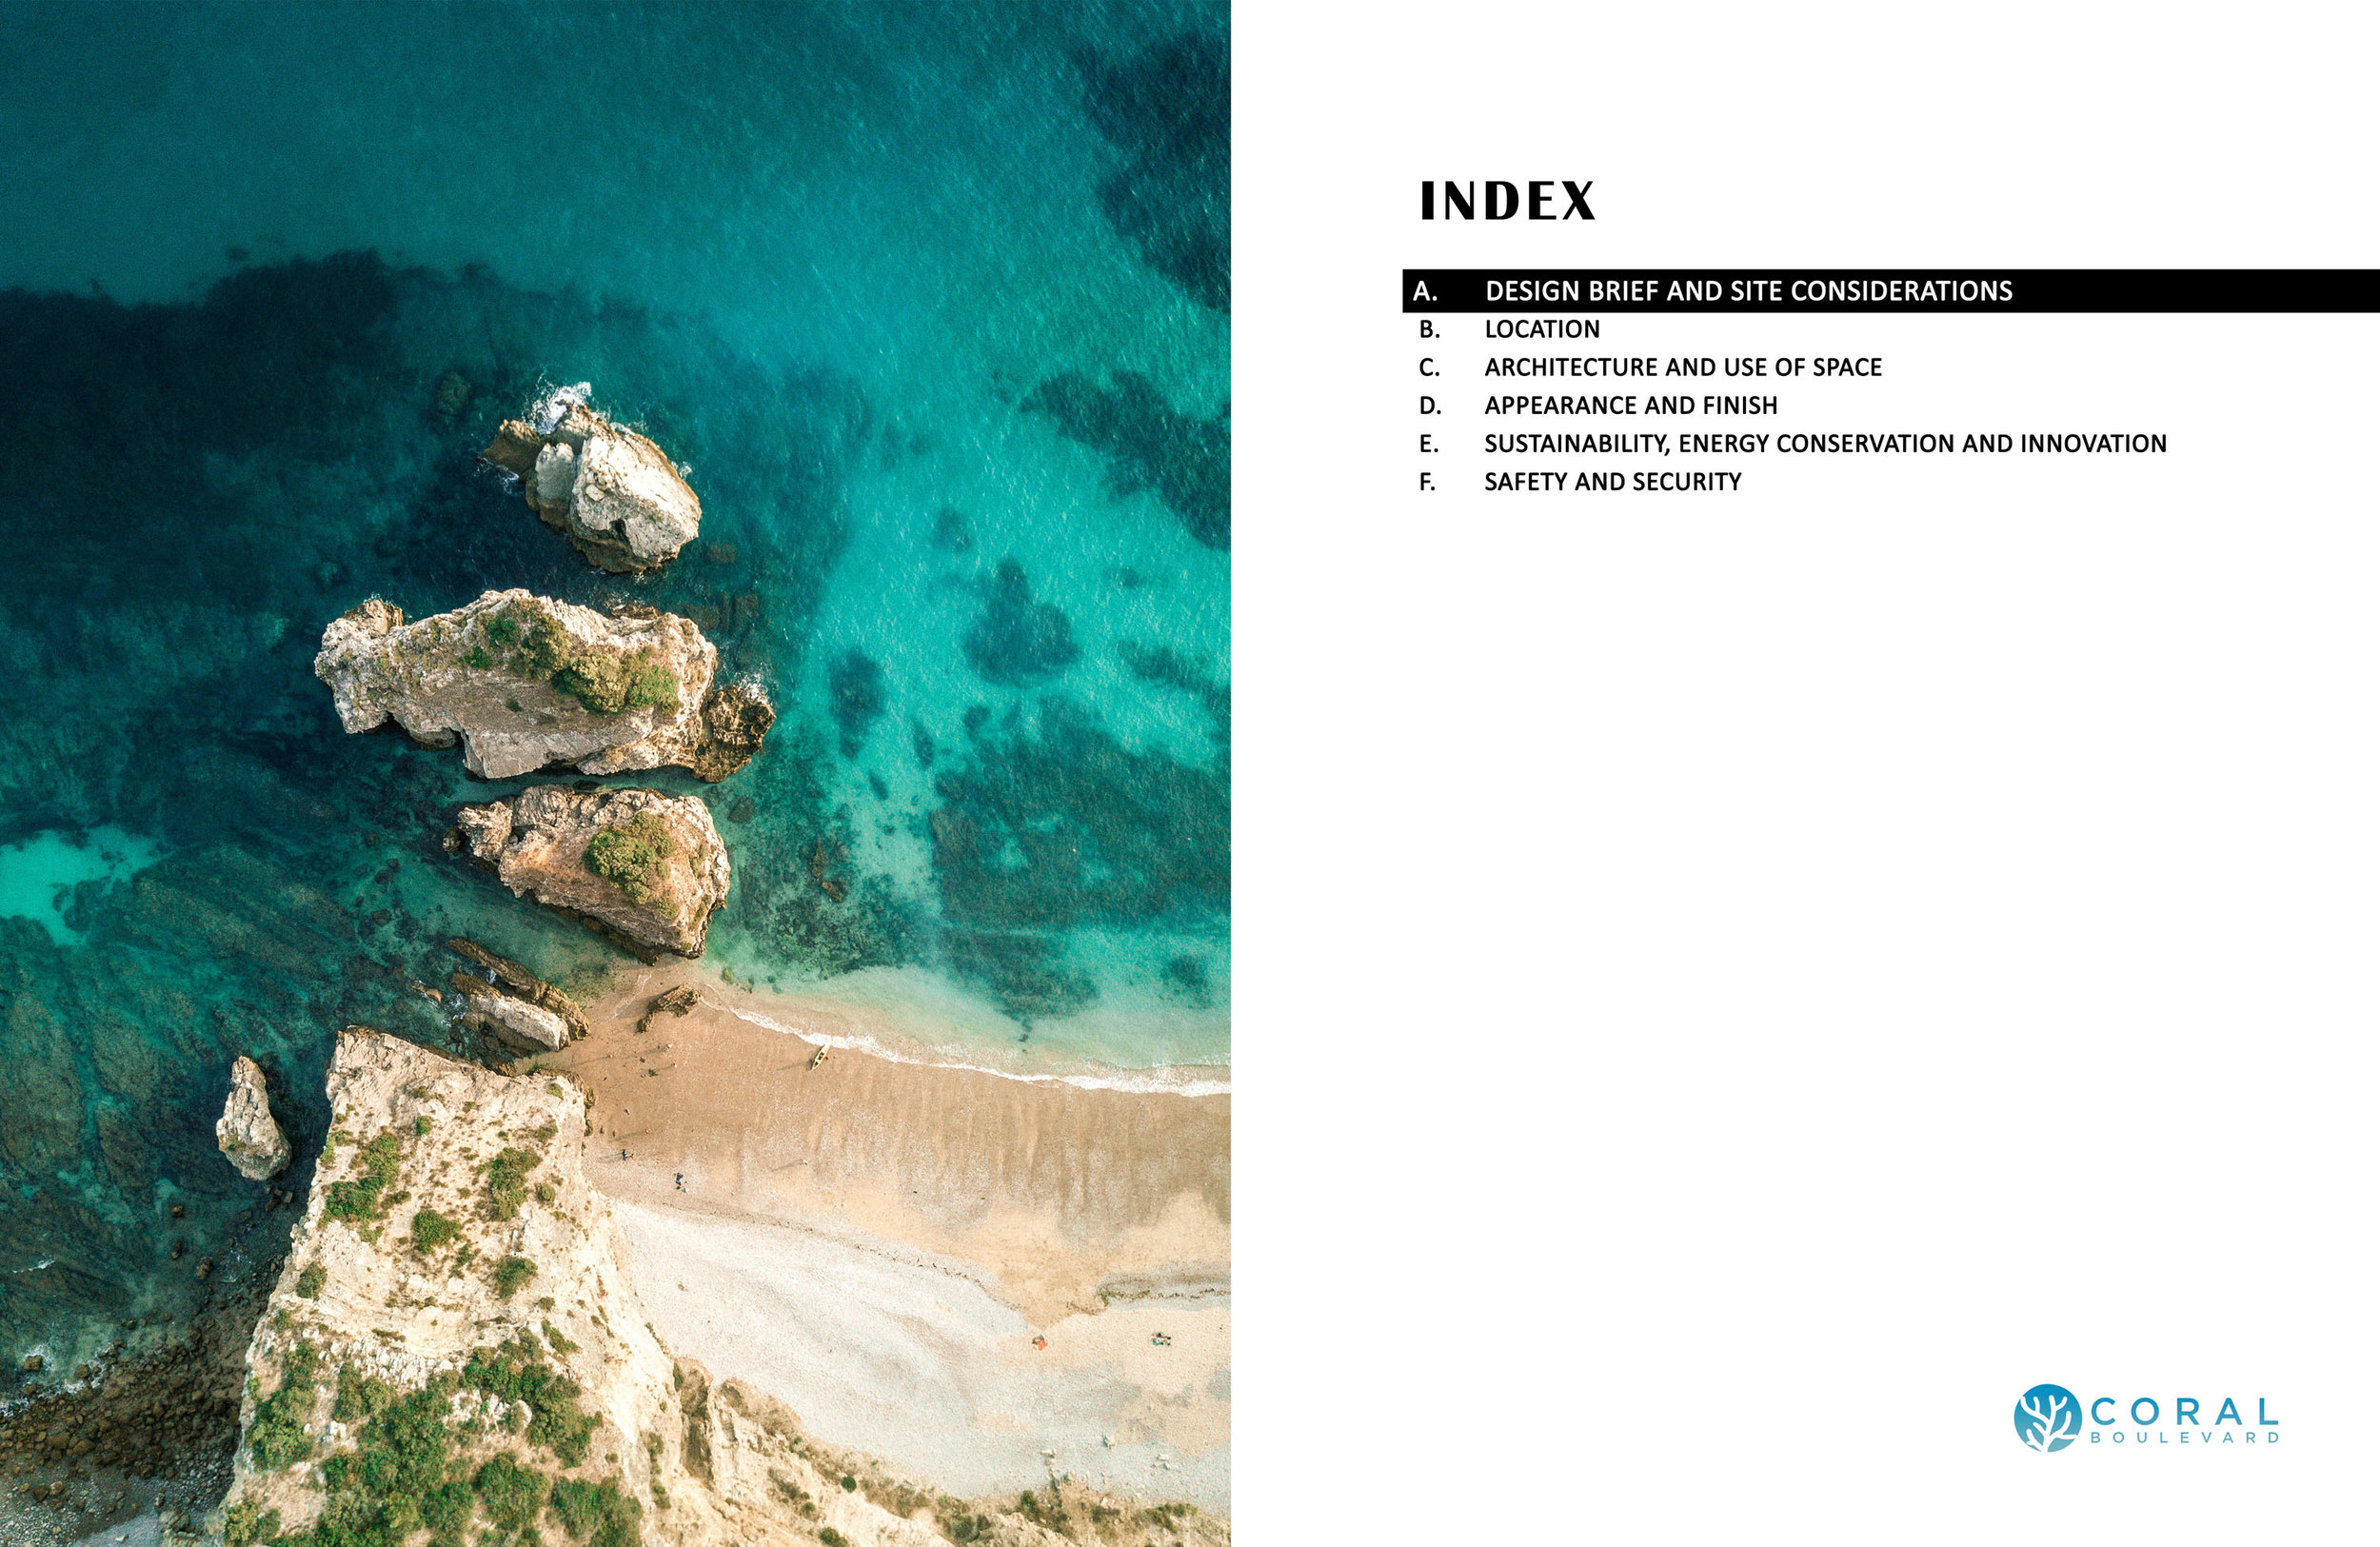 IPA_Coral Boulevard_pages_A-0B.jpg